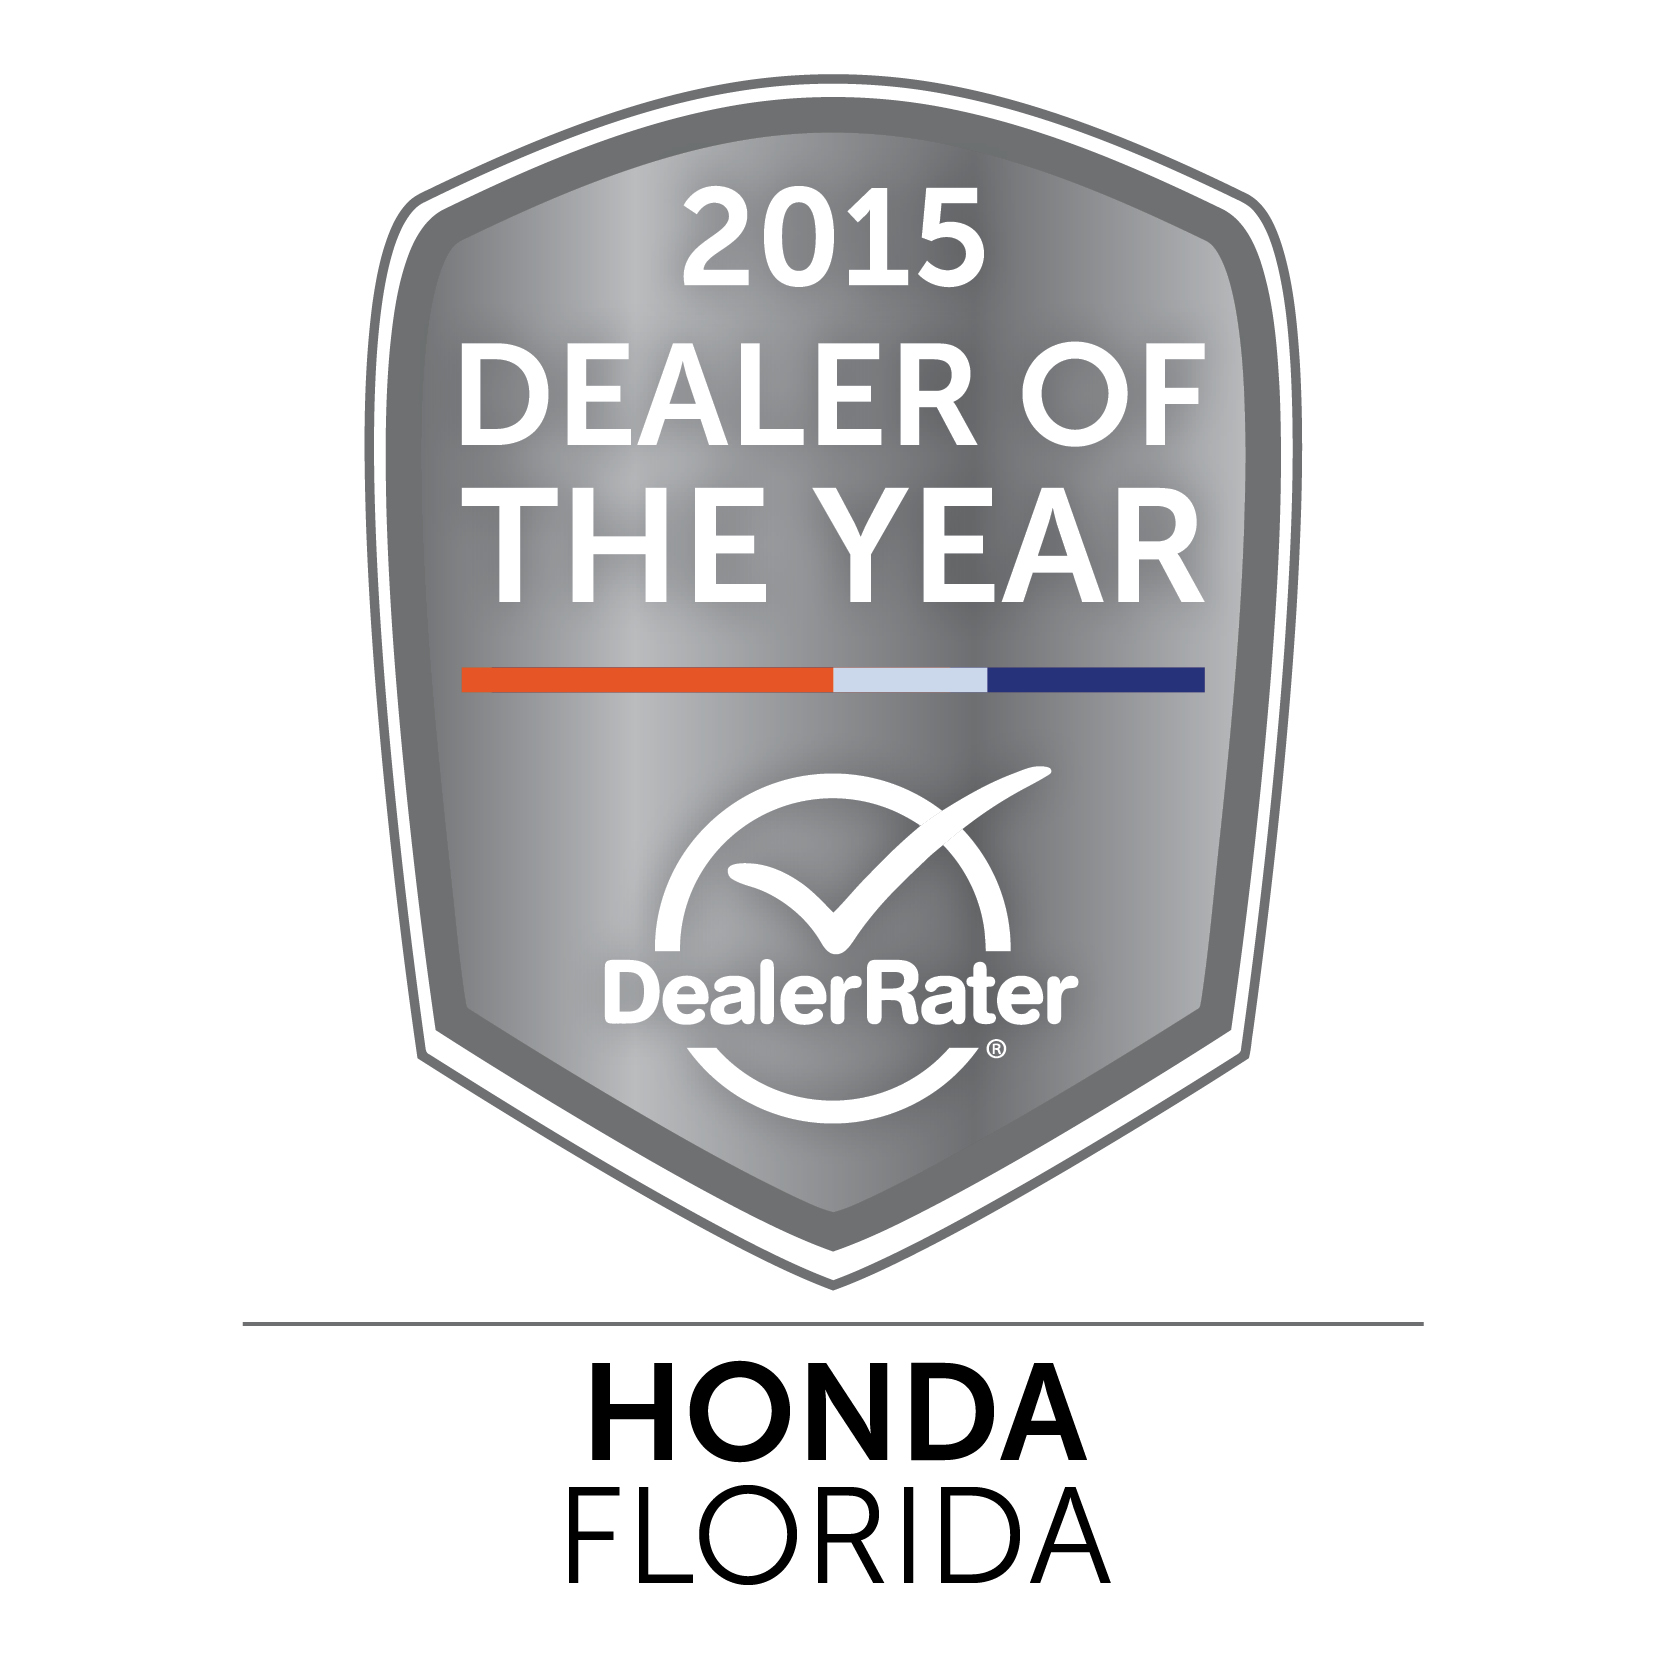 Brandon Honda is 2015 Honda Dealer of the Year in Florida